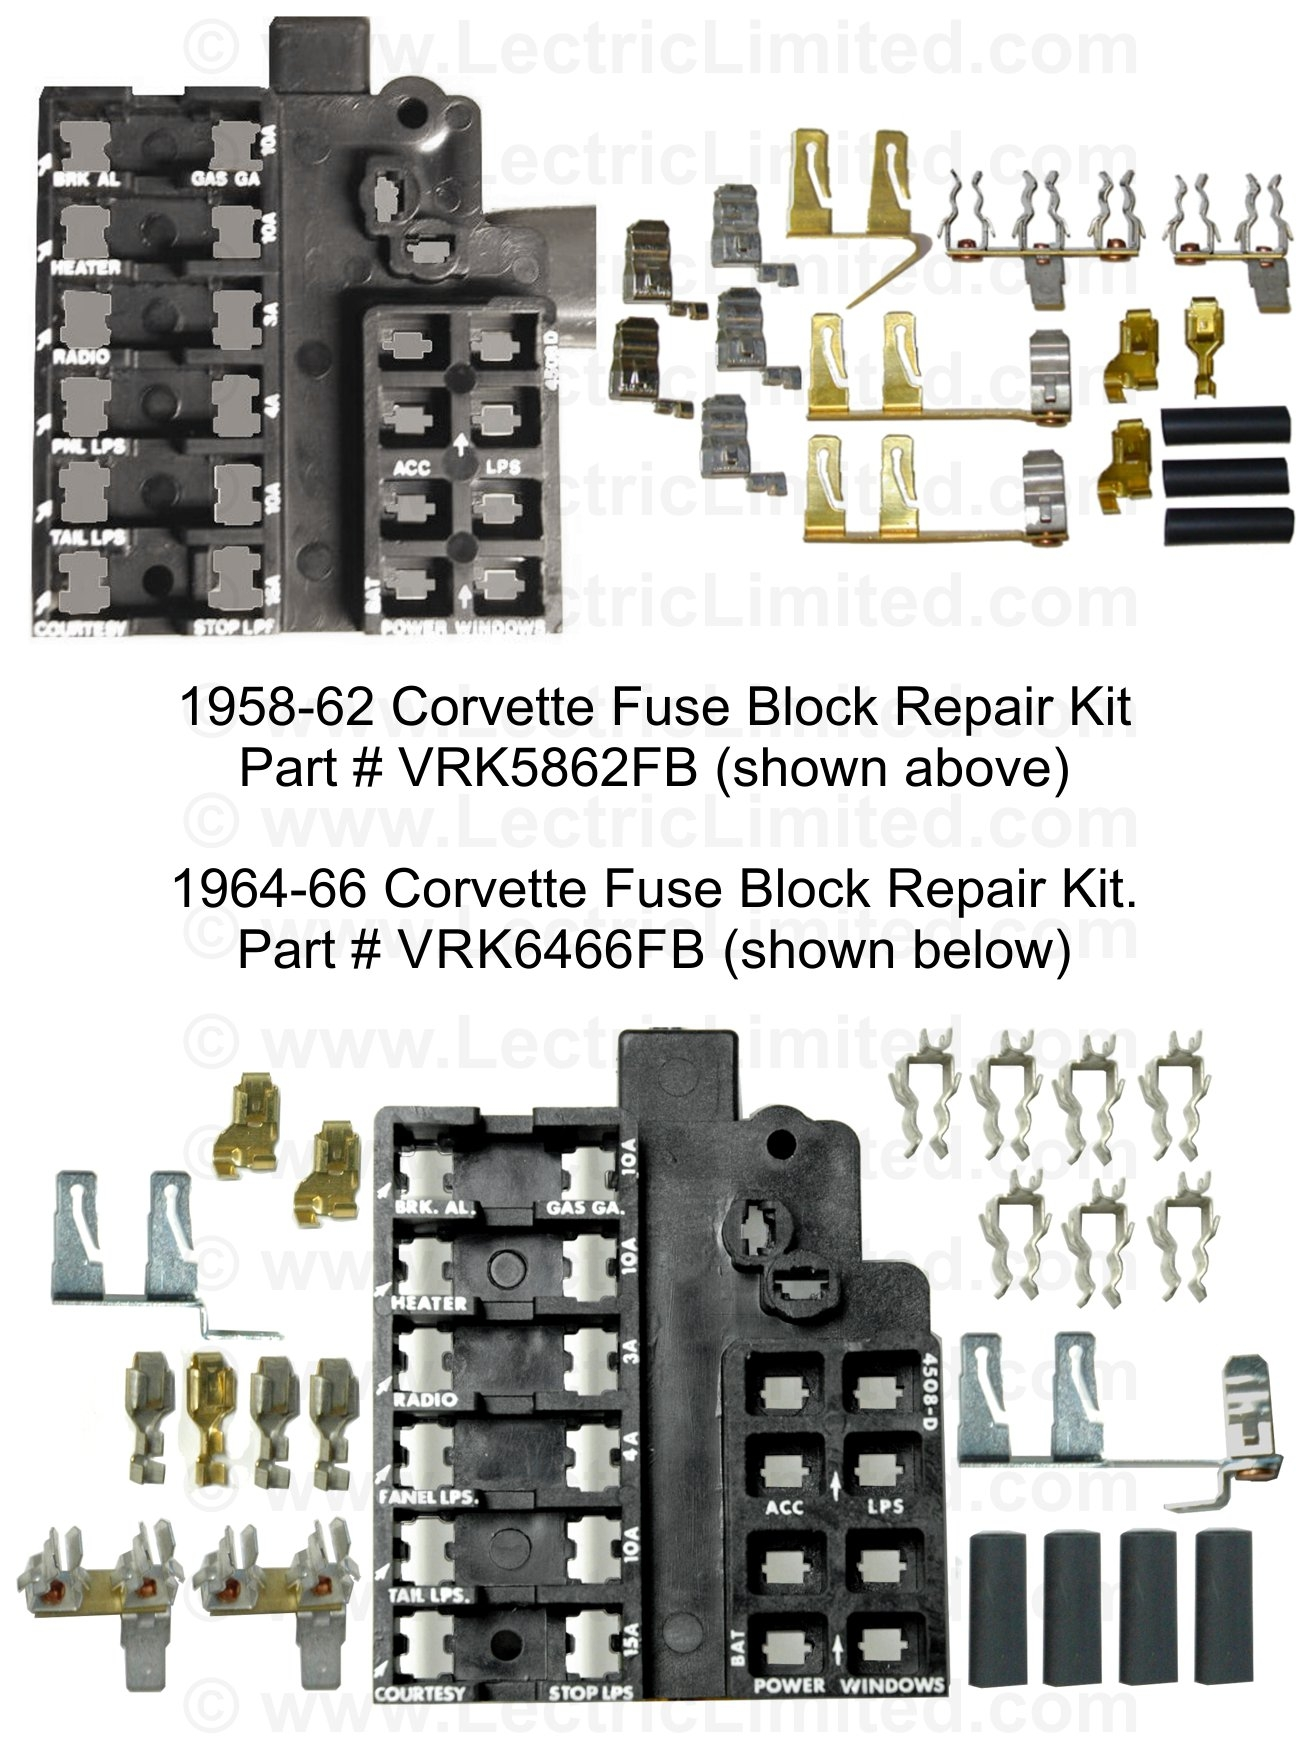 1999 Camaro Fuse Box Diagram On 1998 Pontiac Firebird Fuse Box